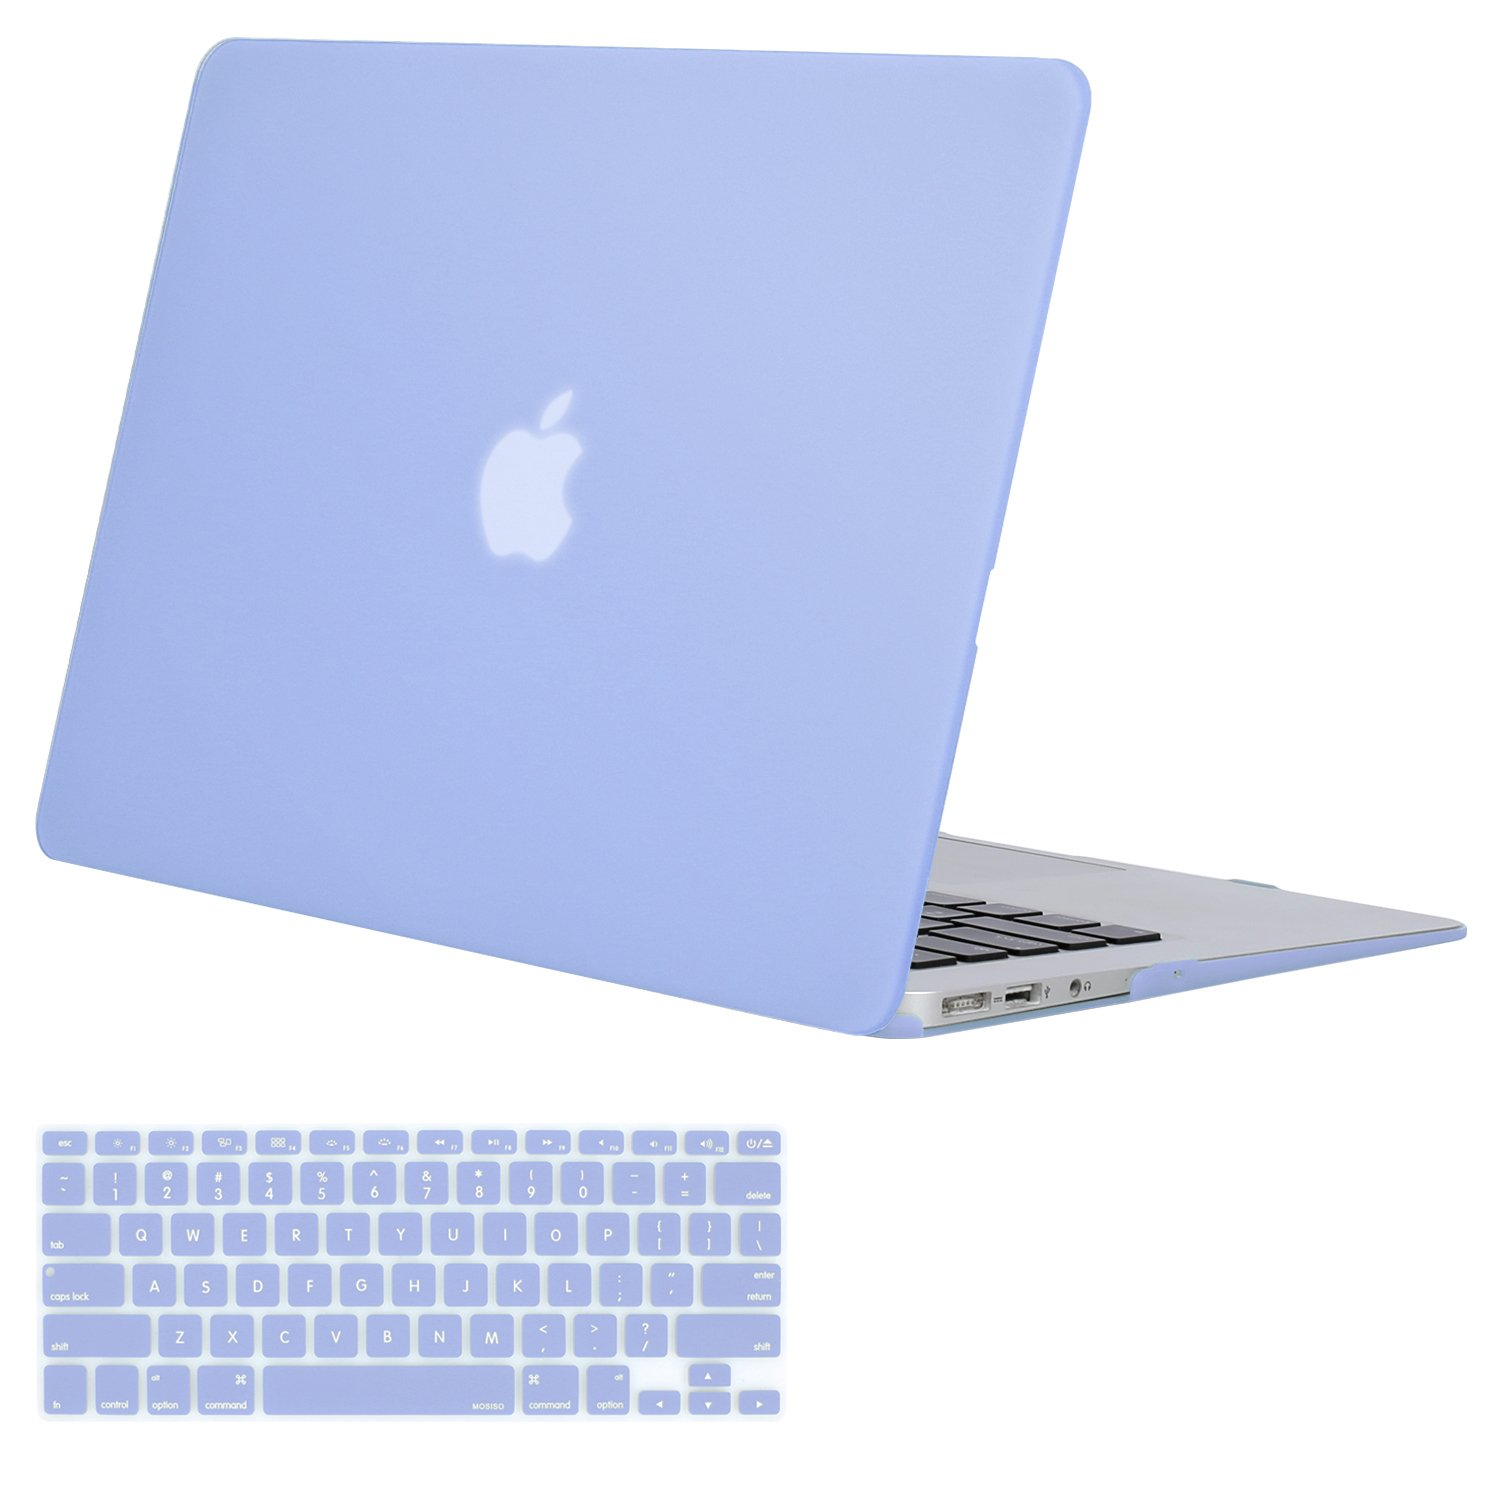 MOSISO Plastic Hard Shell Case & Keyboard Cover Compatible MacBook Air 13 inch (Models: A1369 & A1466), Serenity Blue